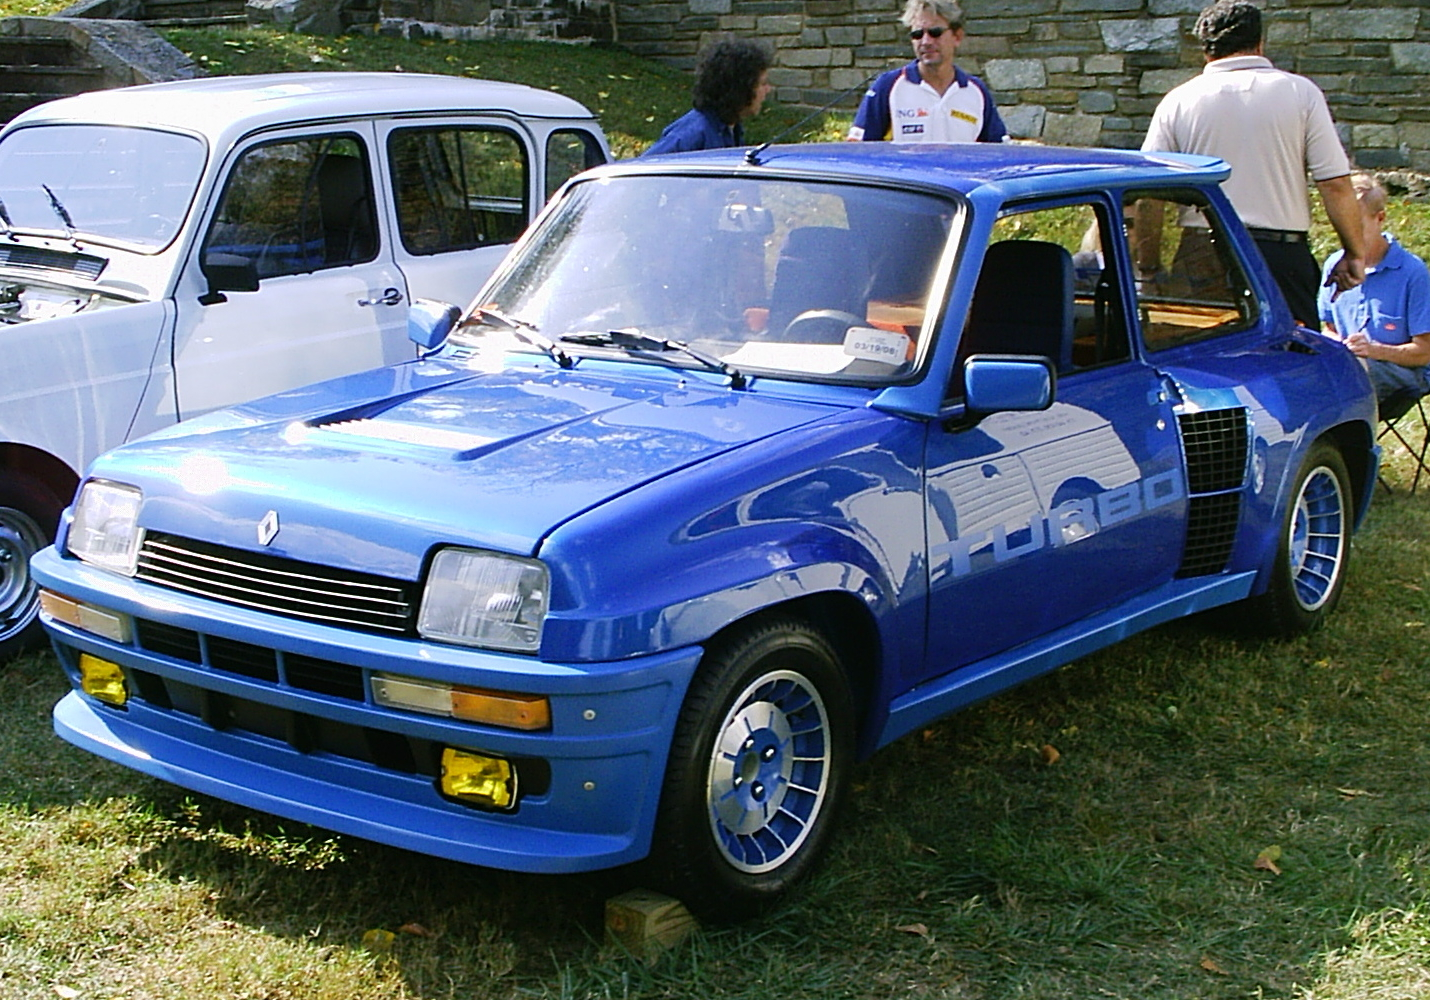 1980 1986 renault 5 turbo dark cars wallpapers. Black Bedroom Furniture Sets. Home Design Ideas